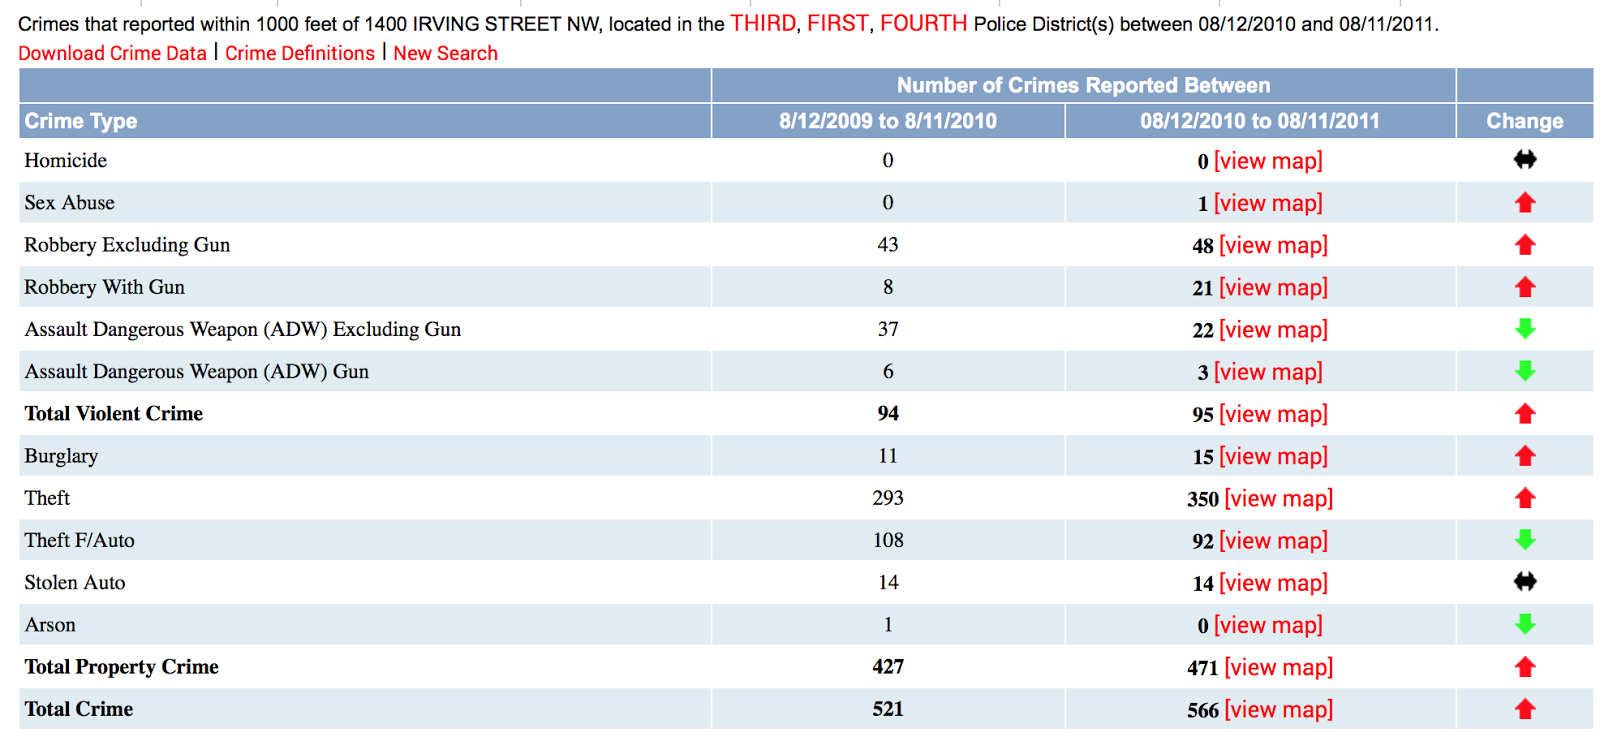 New Columbia Heights Is Columbia Heights Getting More Dangerous The Stats Say Mostly No